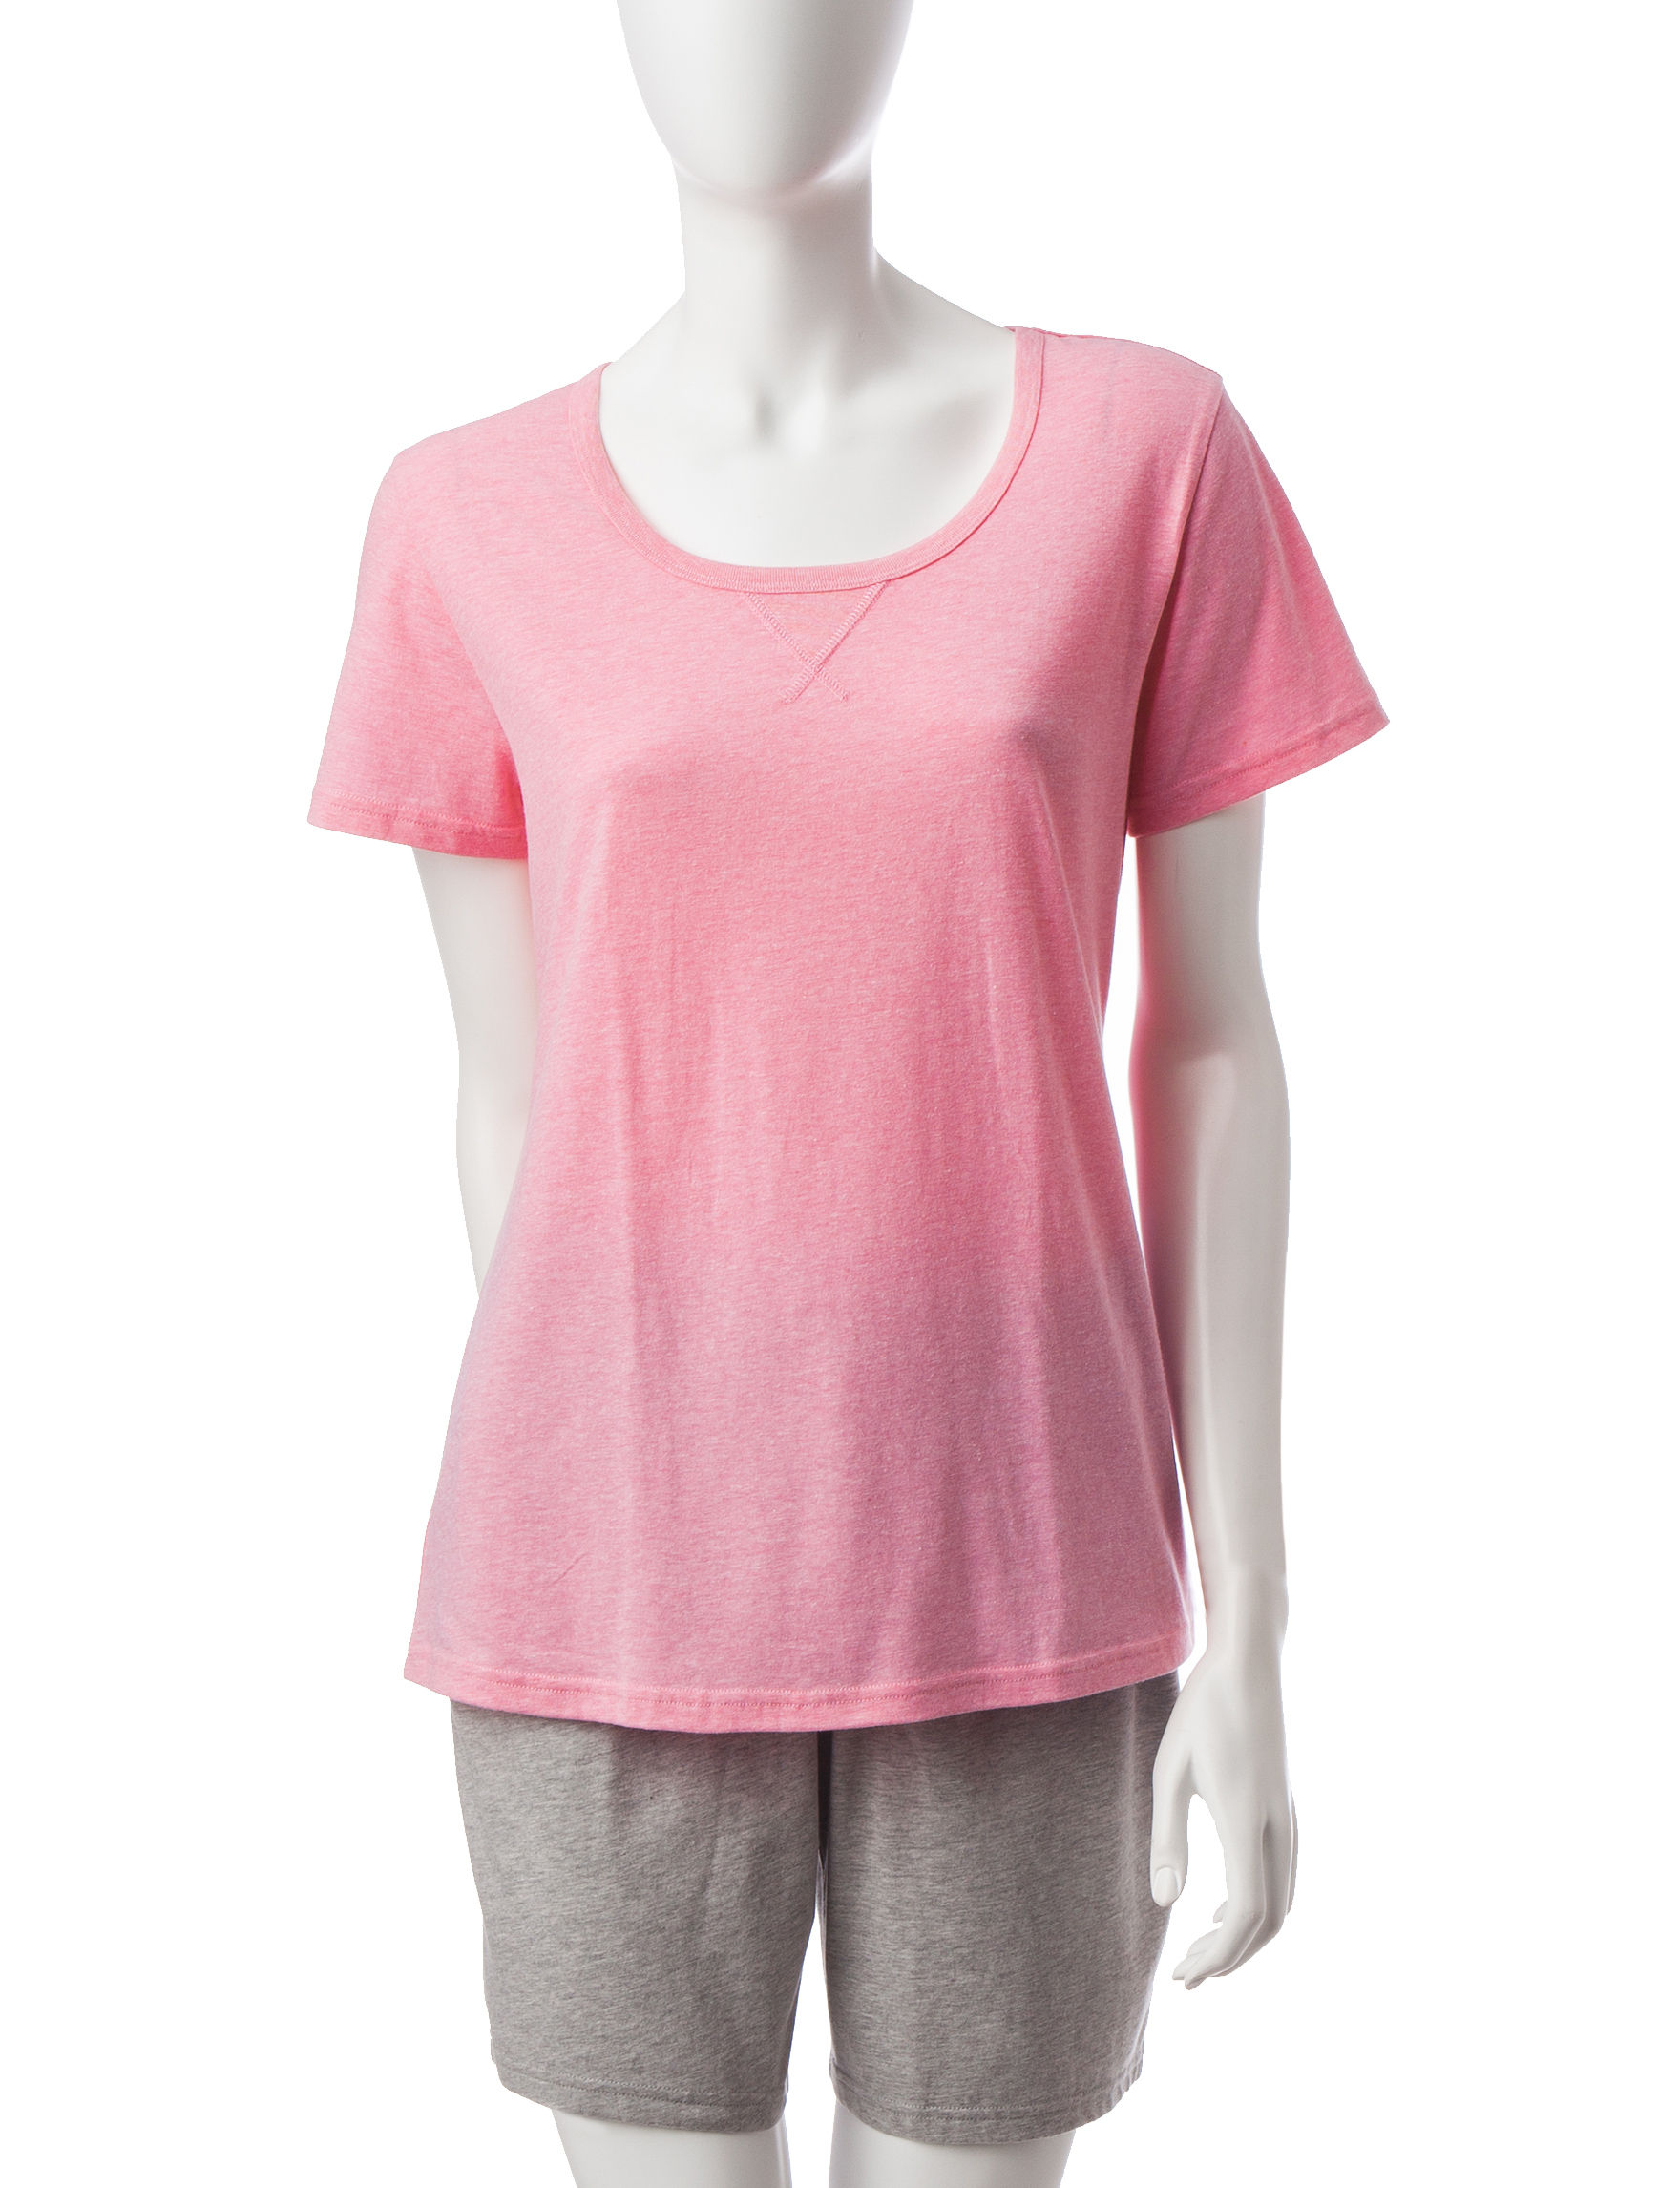 Hanes Medium Pink Pajama Tops